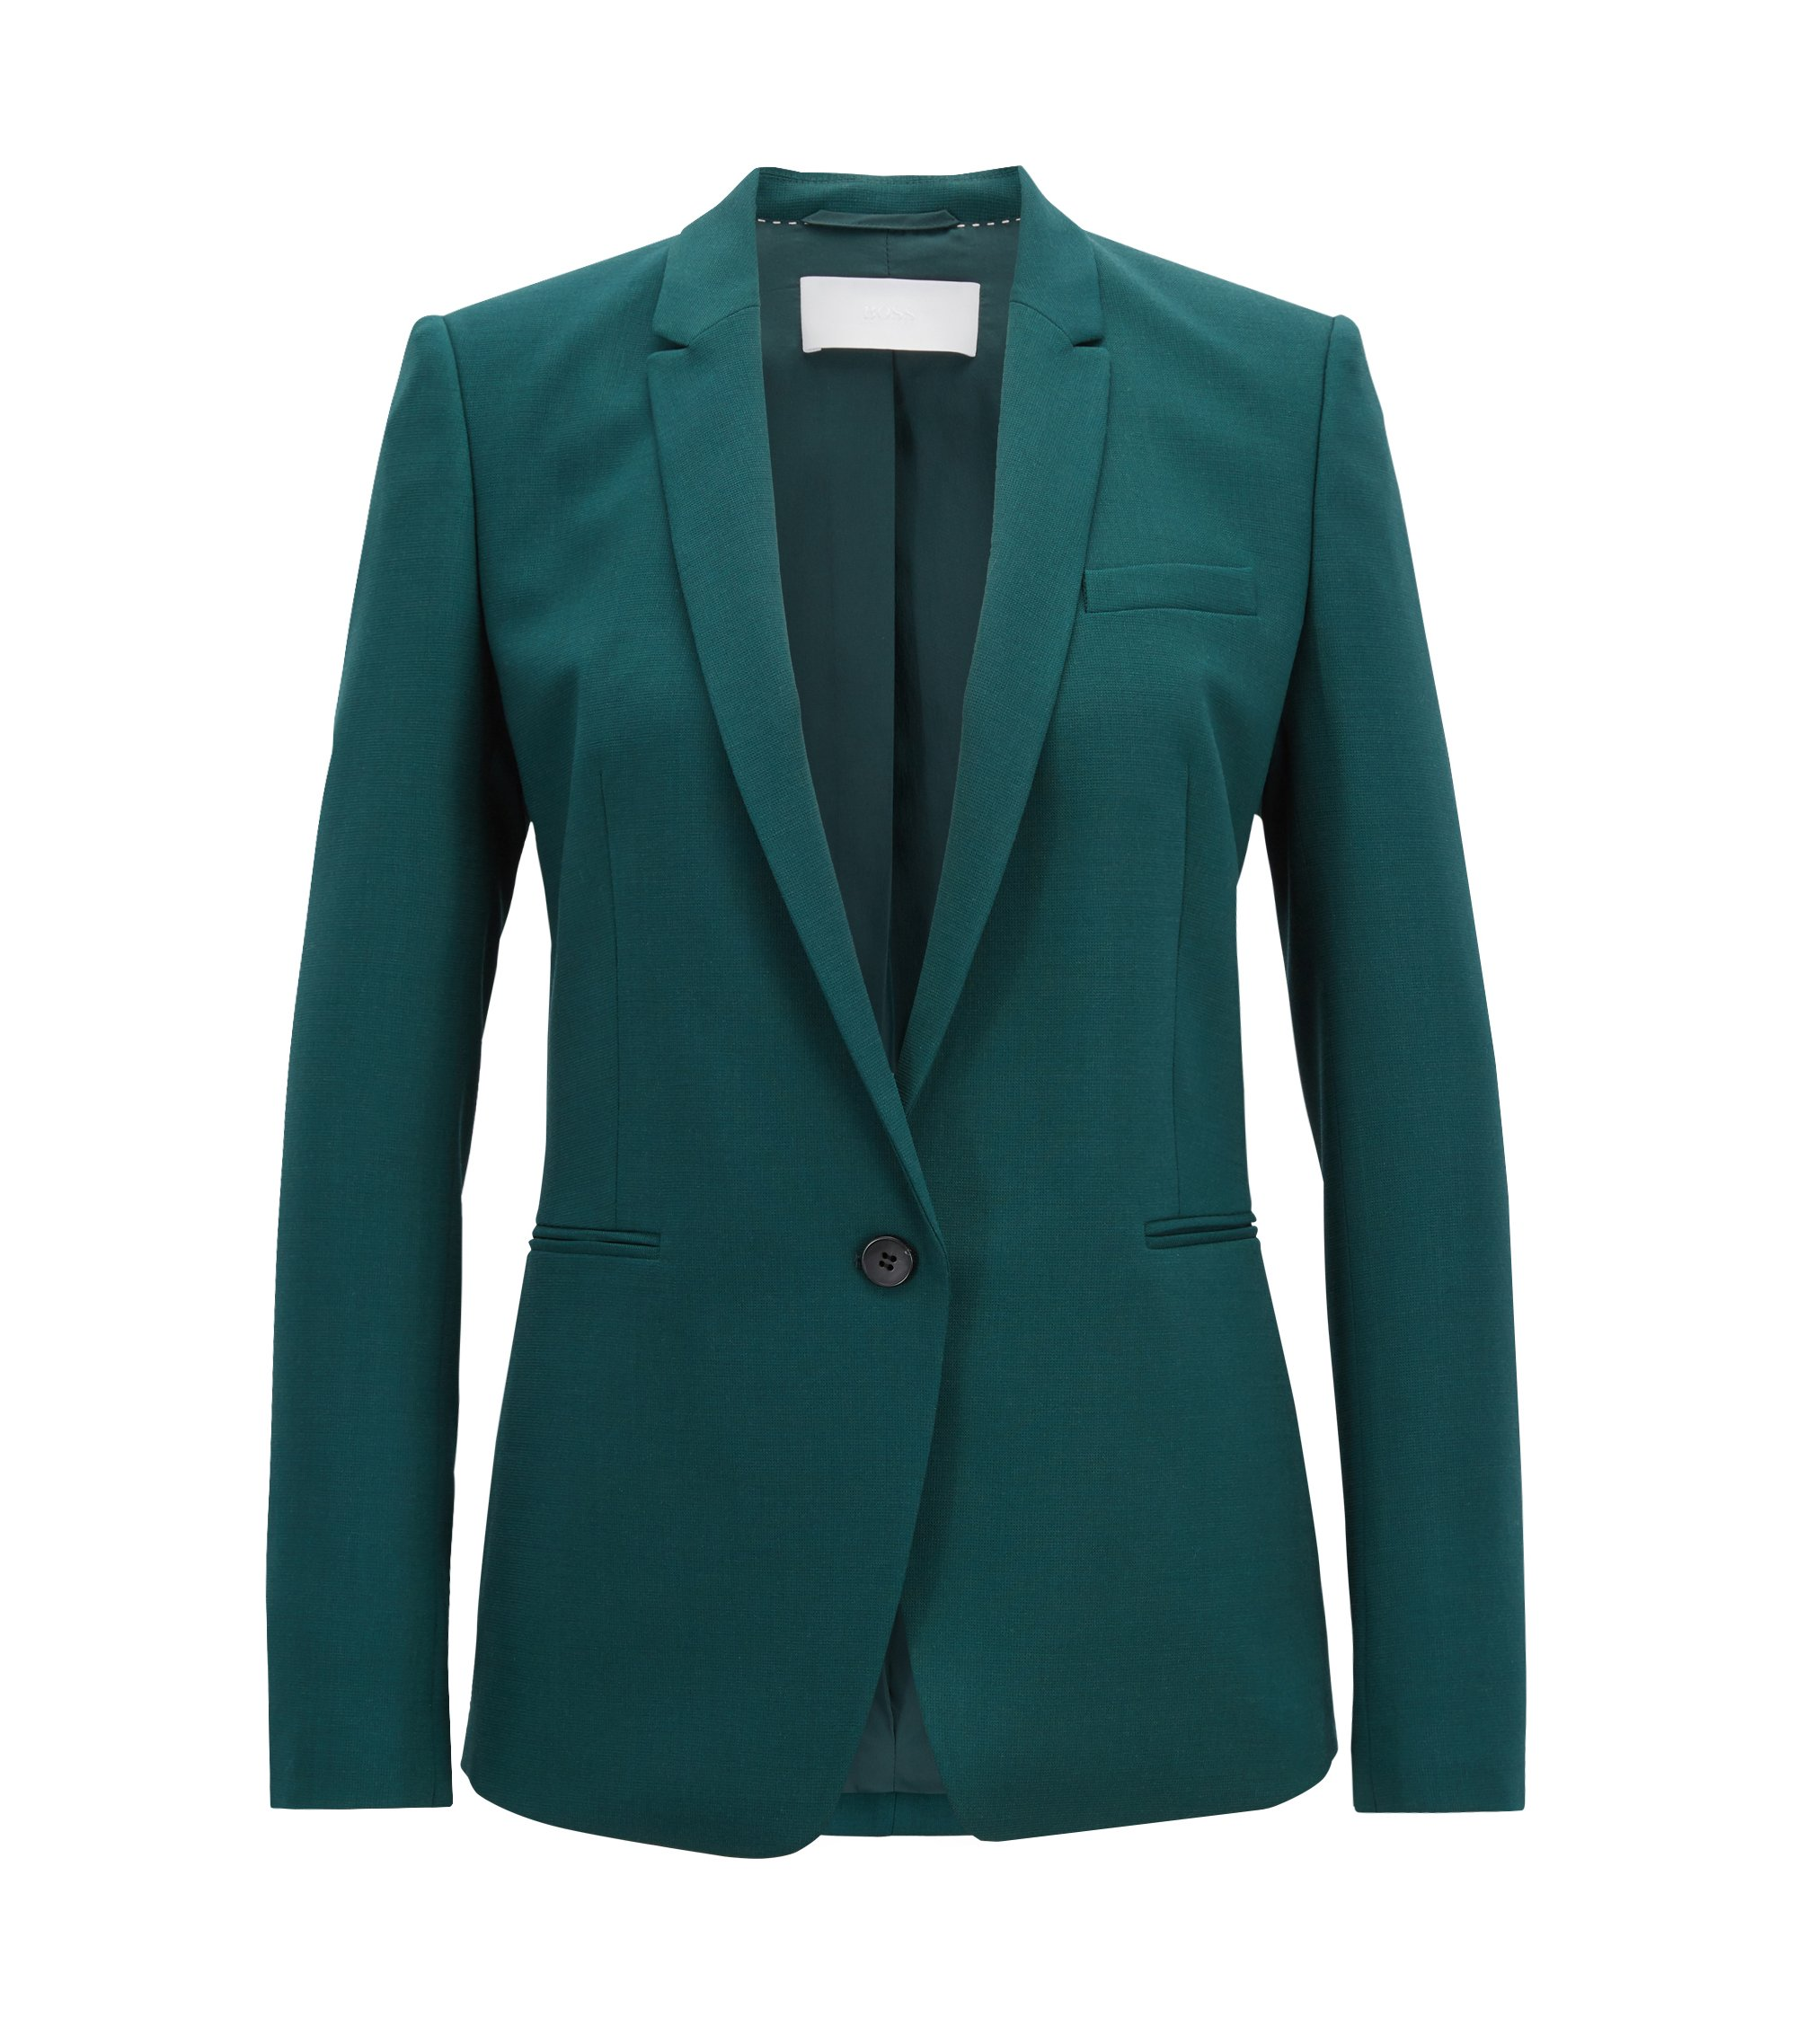 Veste Regular Fit à un bouton en laine vierge stretch, Vert